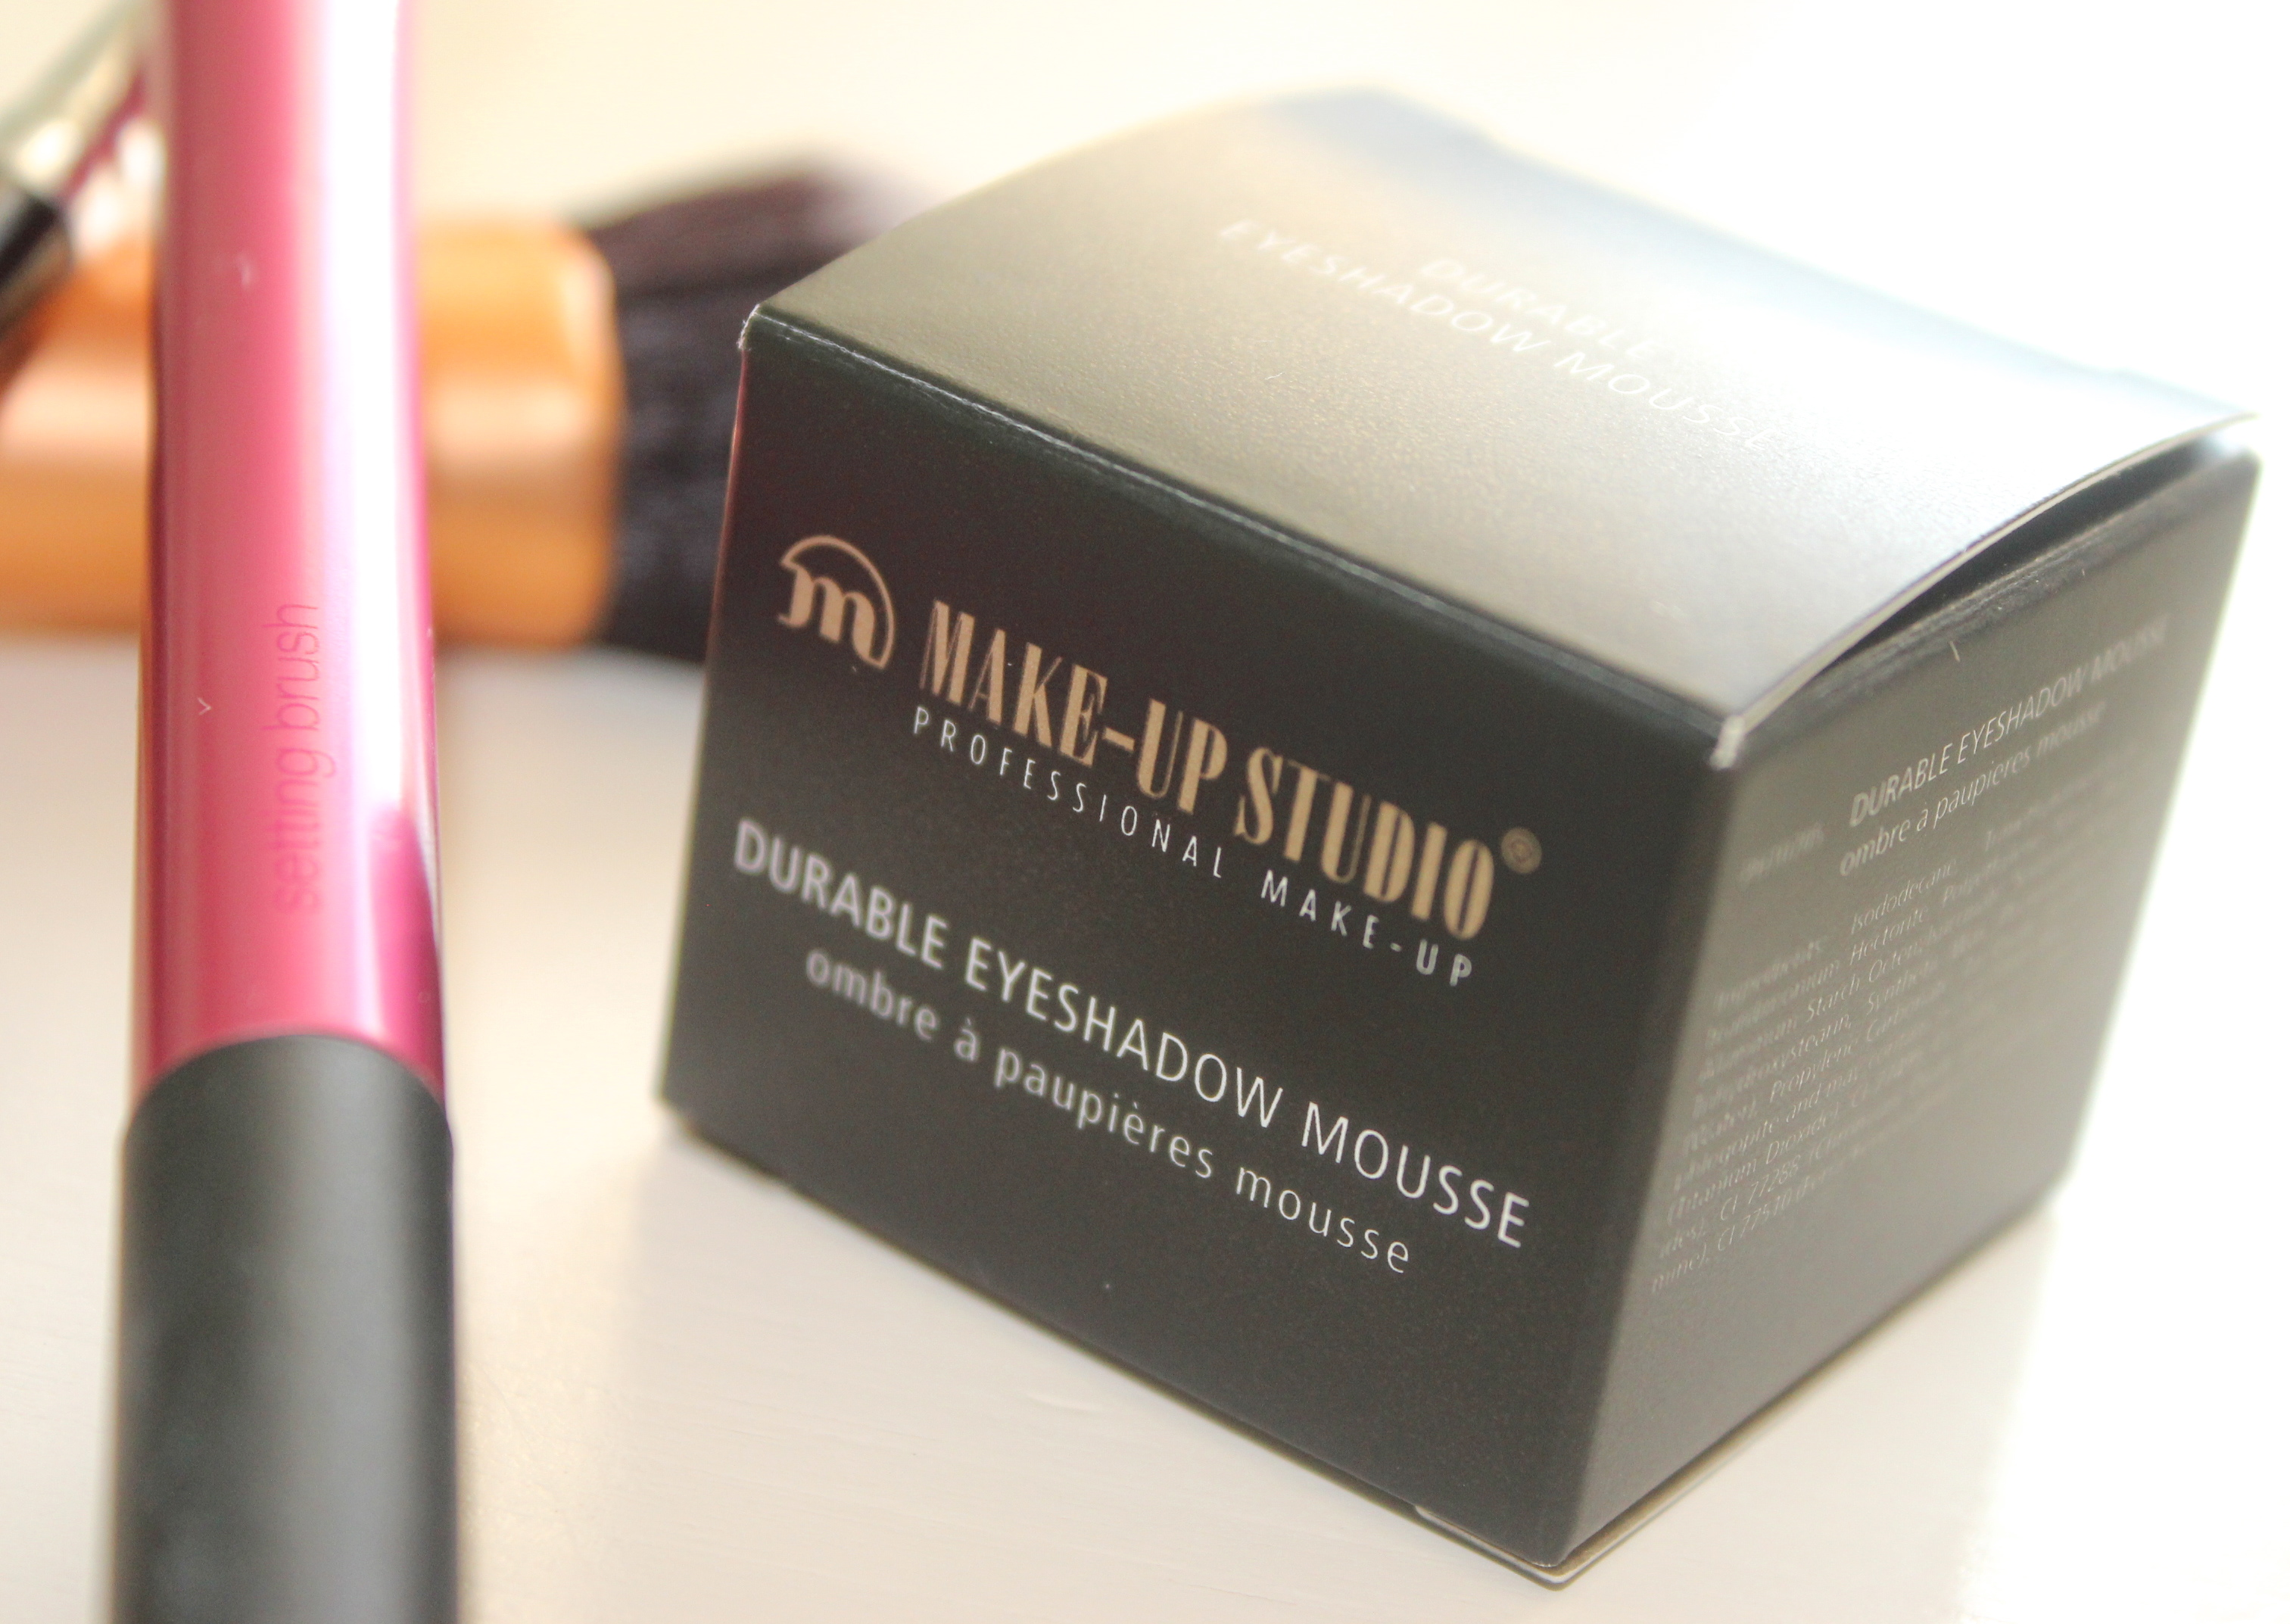 Make-up studio durable eyeshadow mousse be bronze package